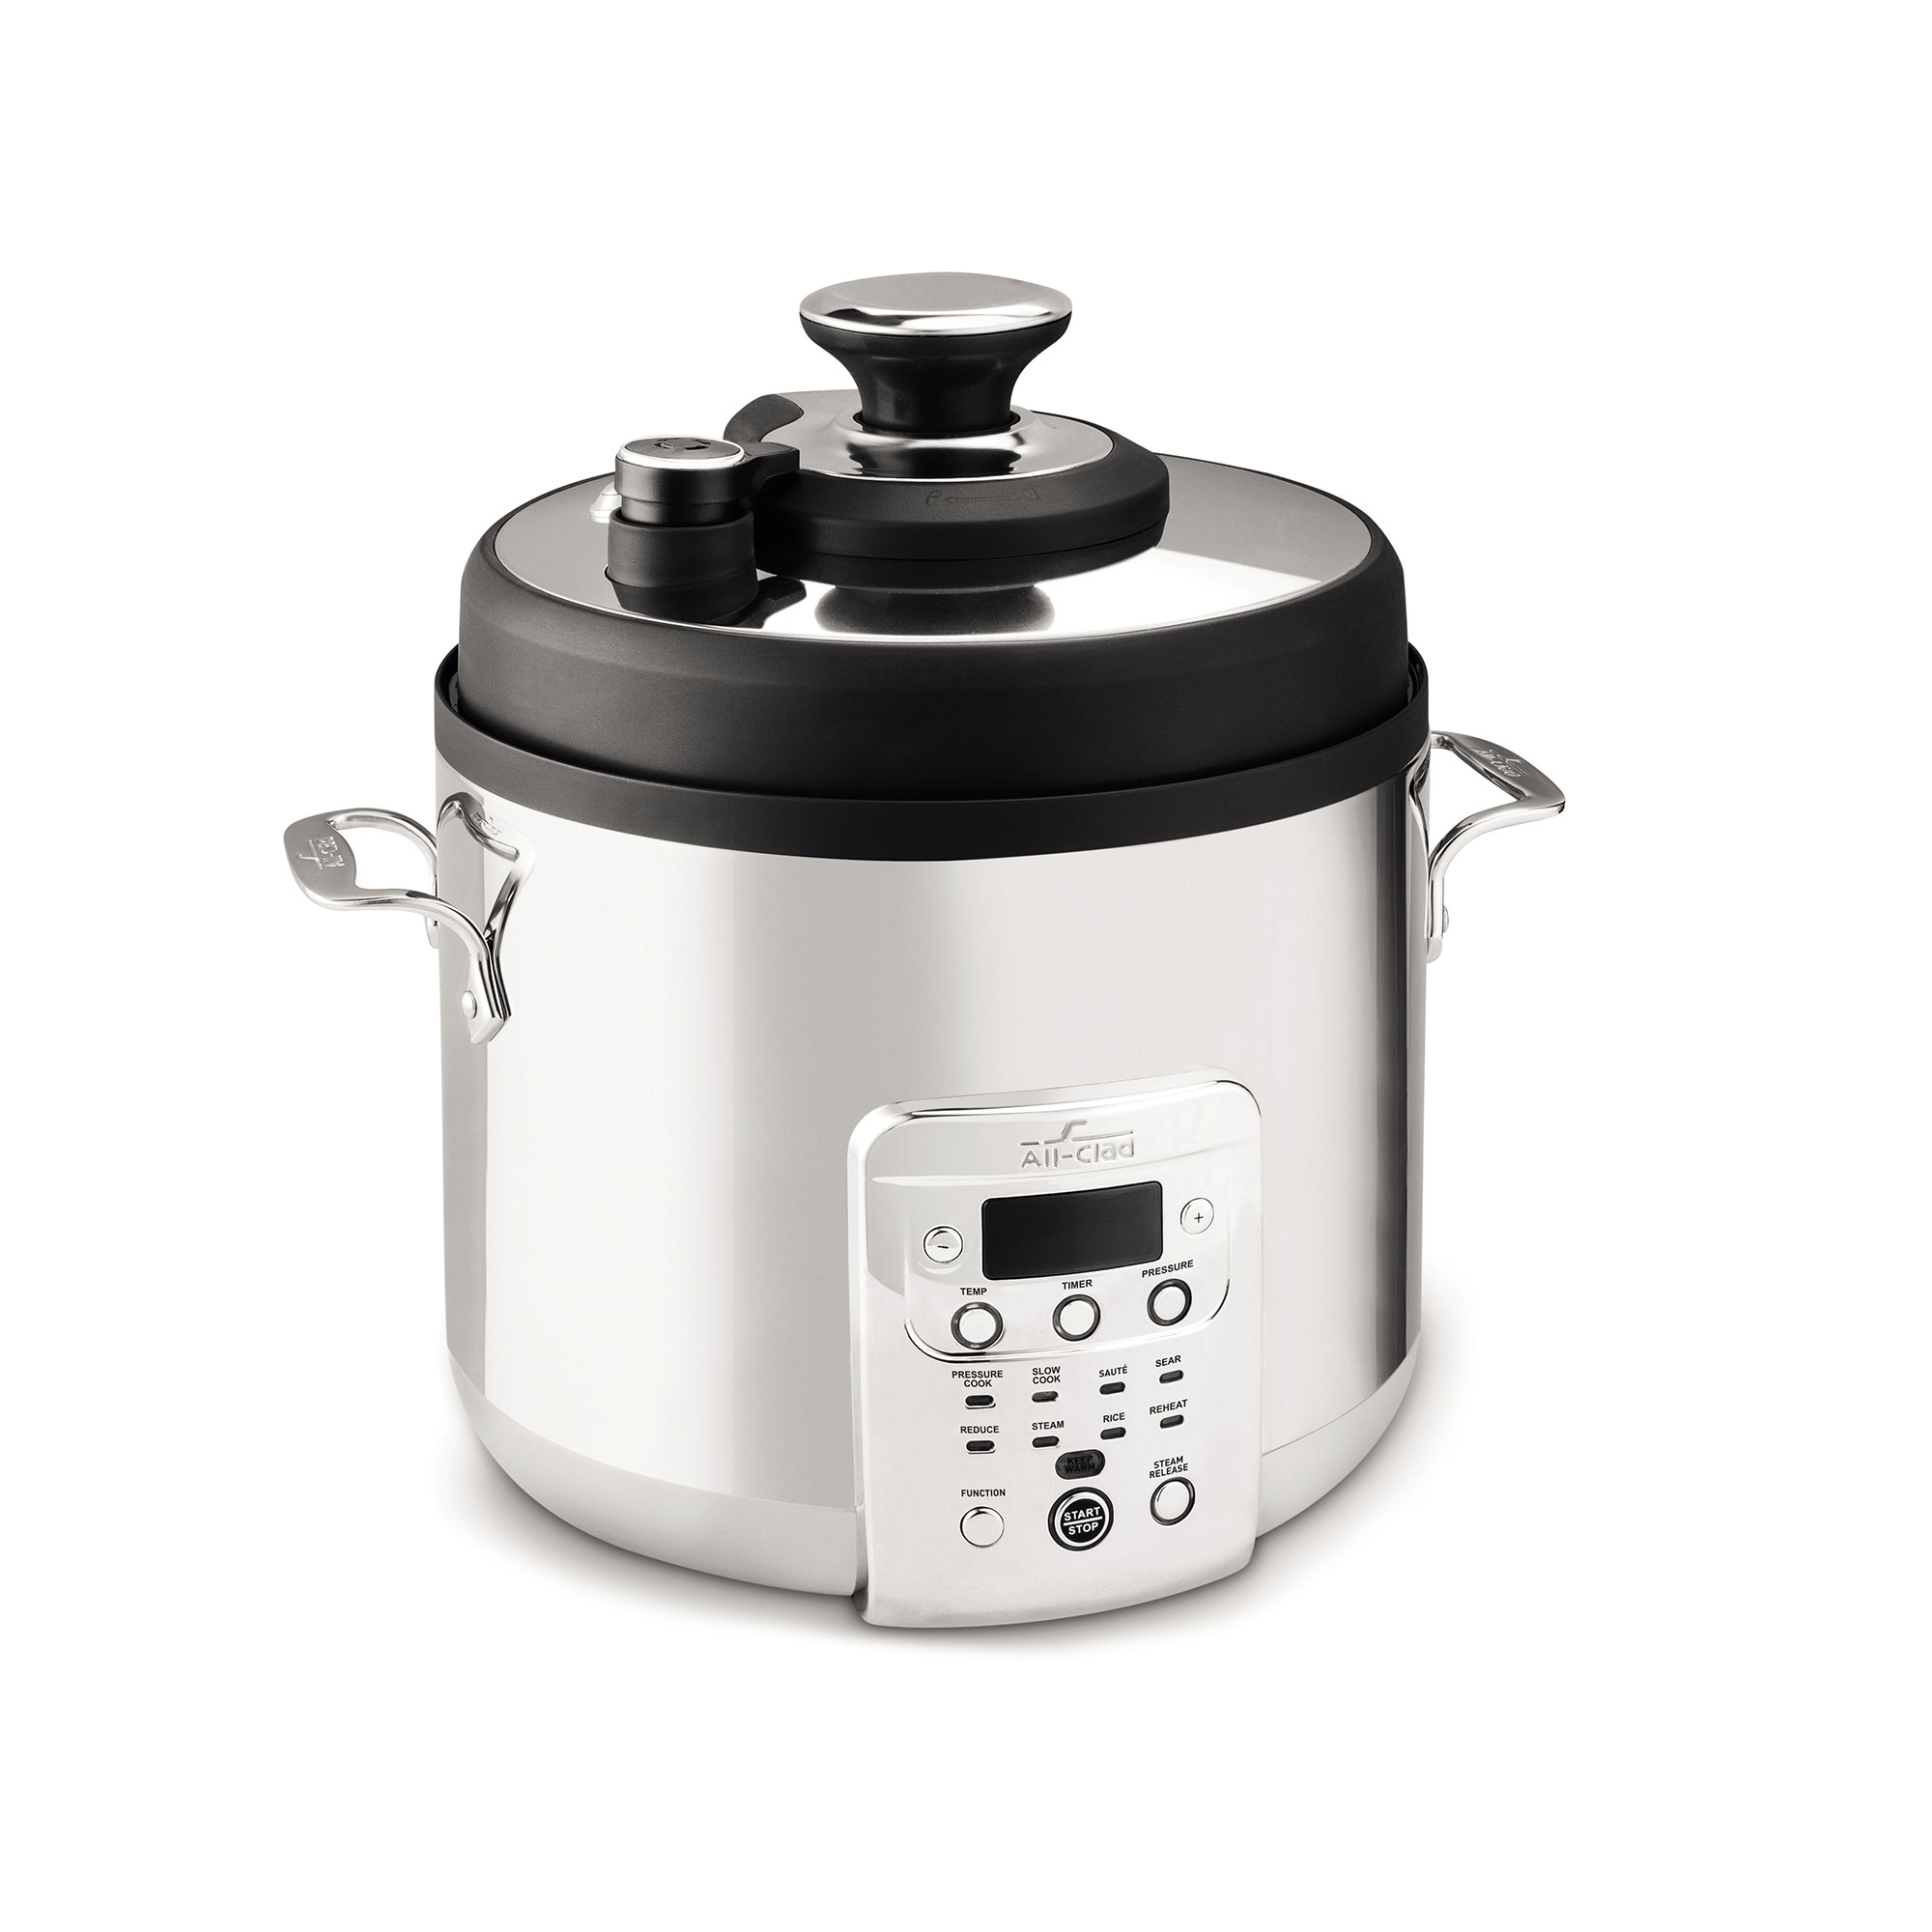 Electric Pressure Cooker by AllClad Electric cooker